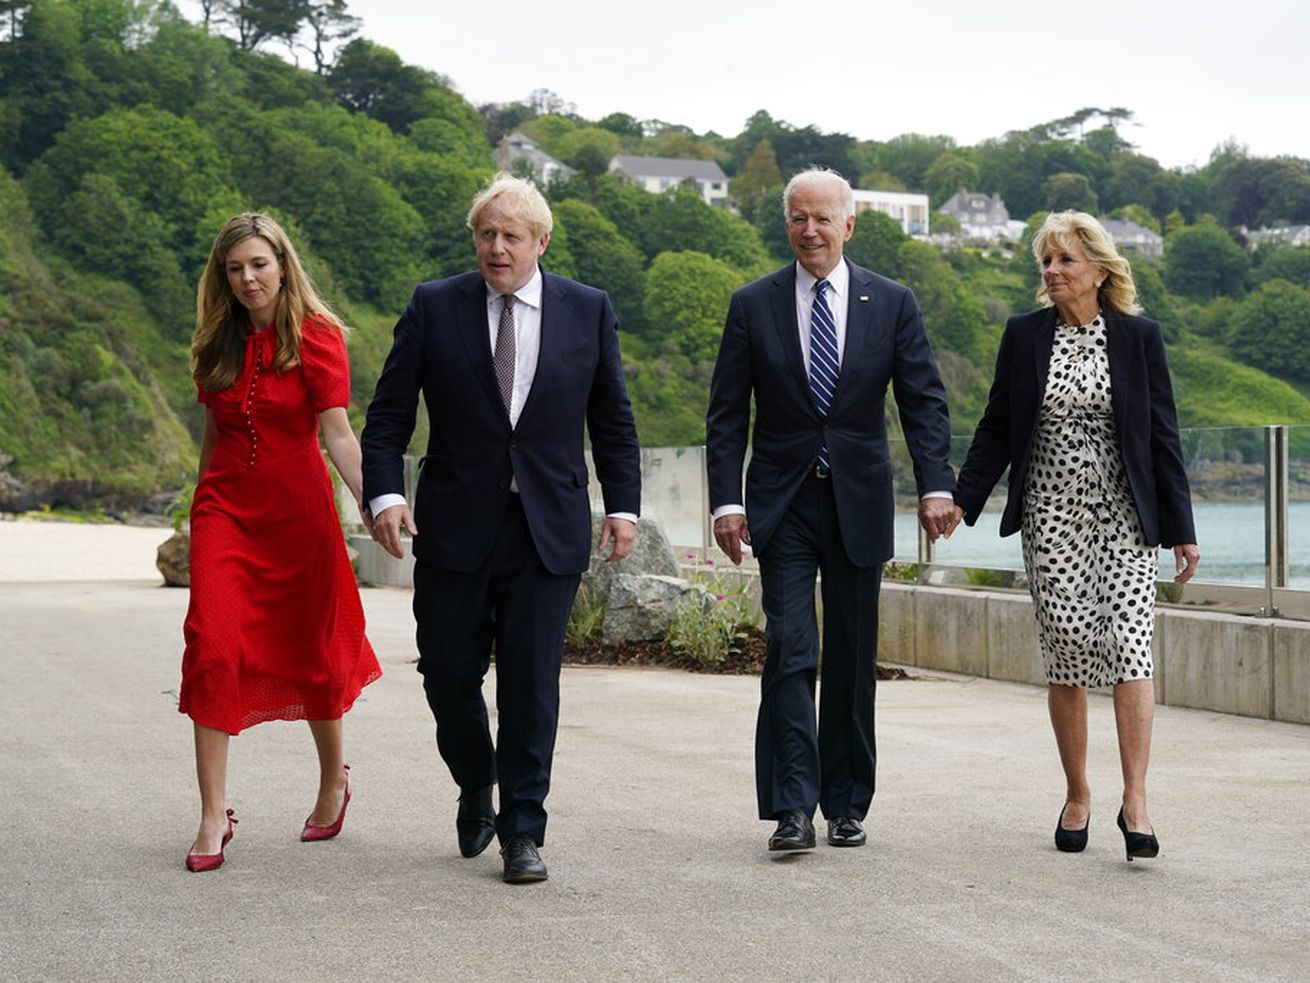 President Joe Biden and first lady Jill Biden walk with British Prime Minister Boris Johnson and his wife, Carrie Johnson.